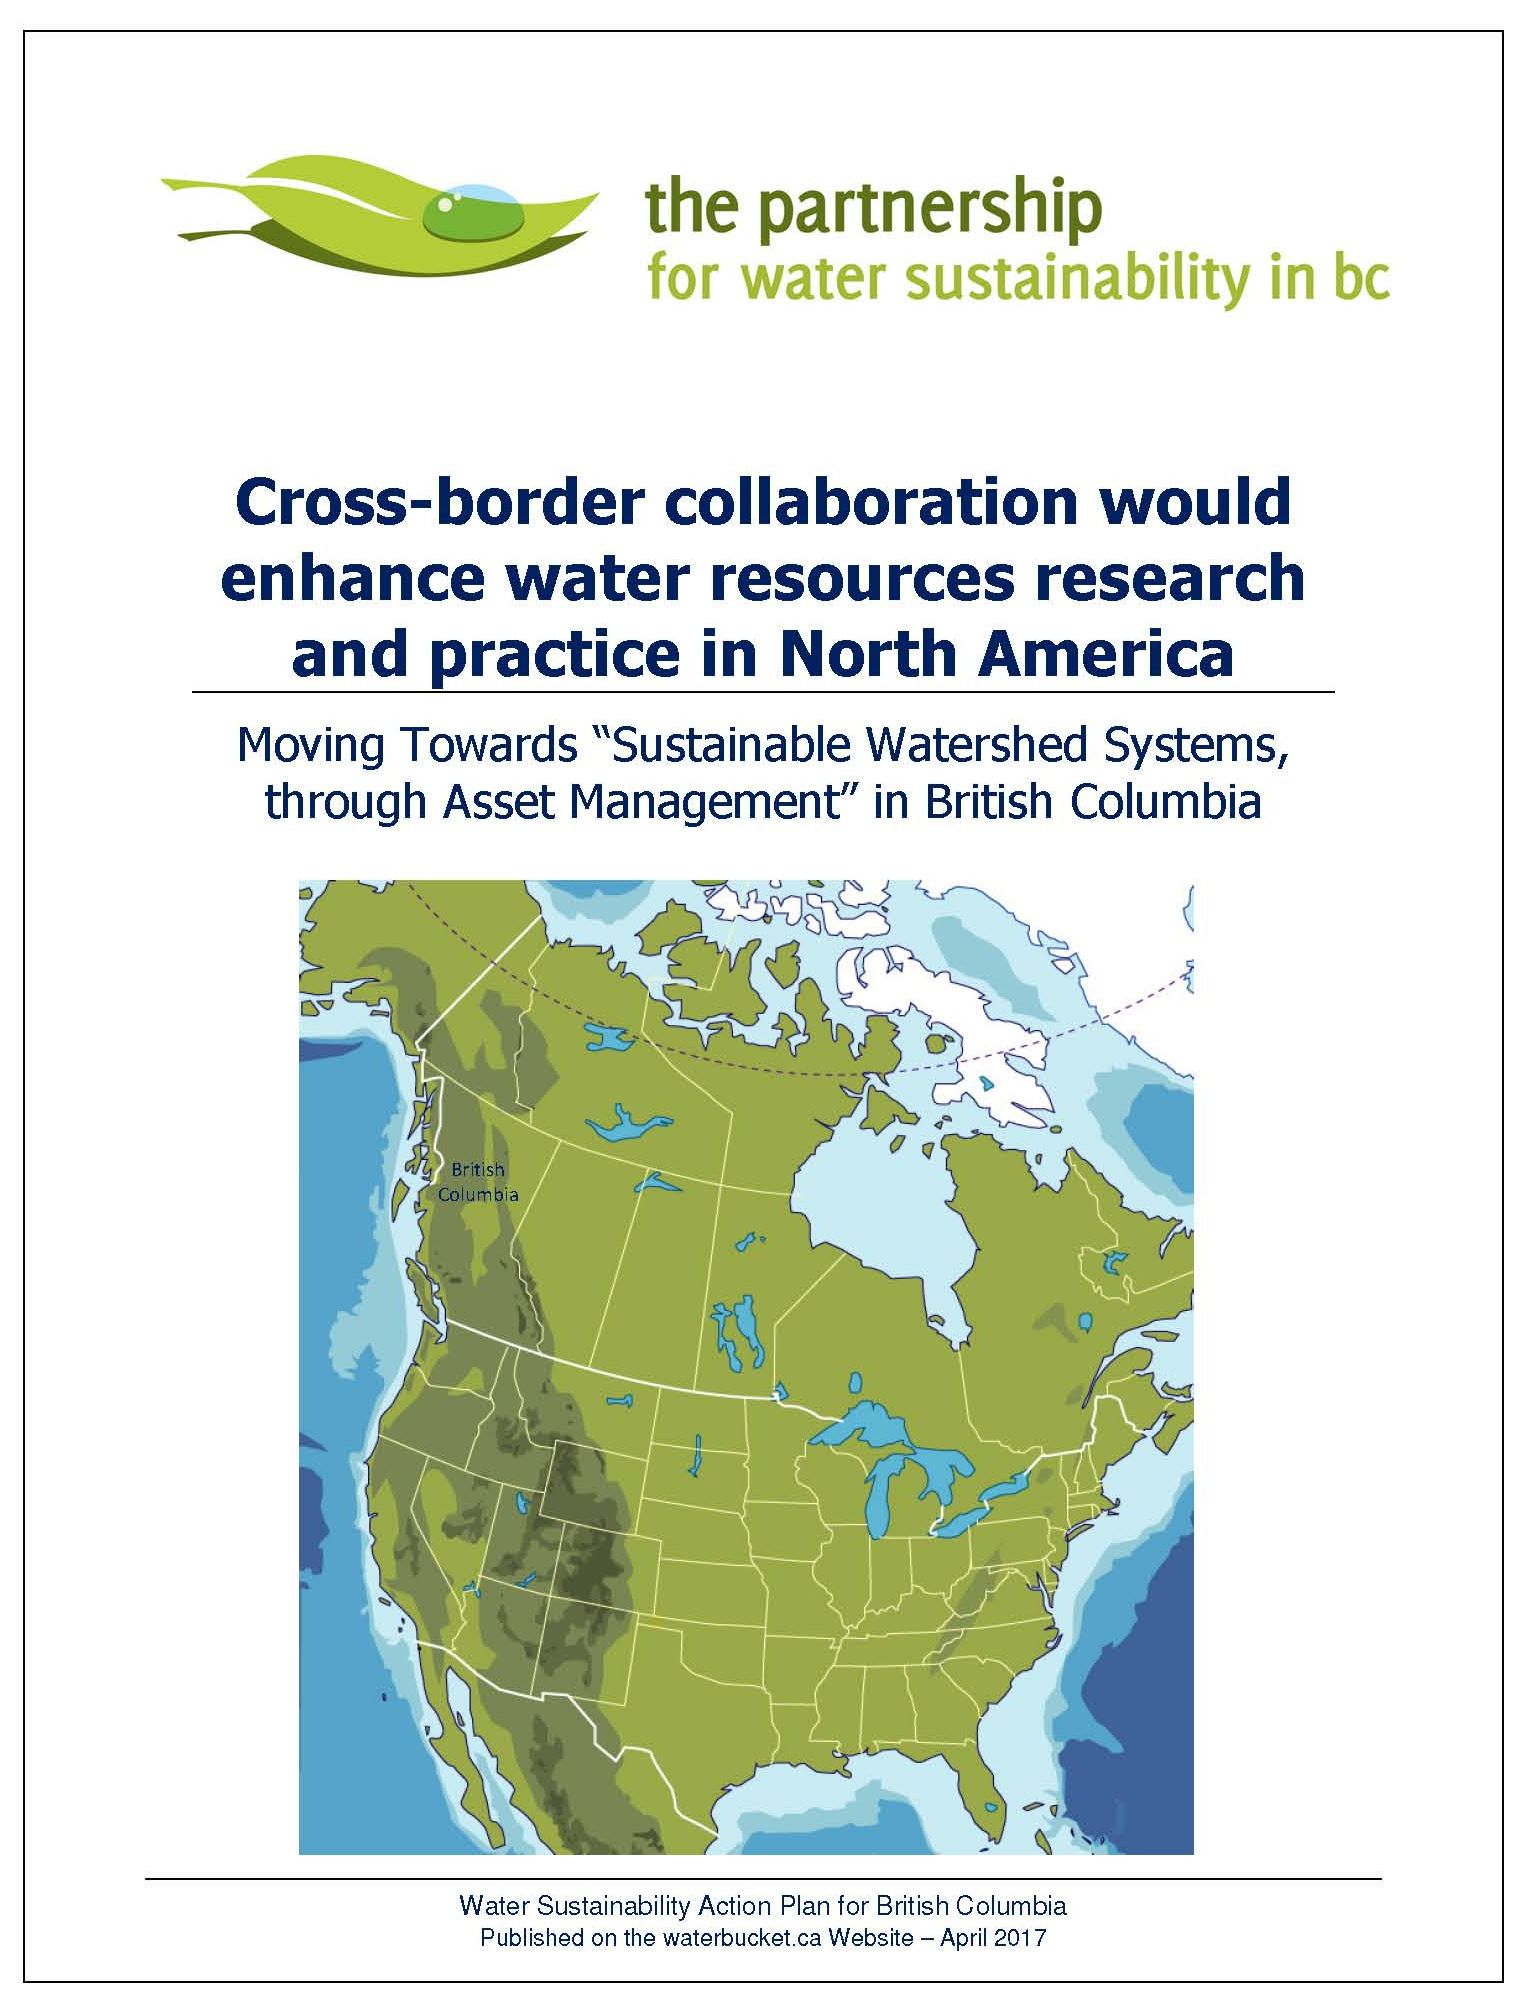 PWSBC_Collaboration-Enhances-Water-Resources-Practice_Apr2017_cover